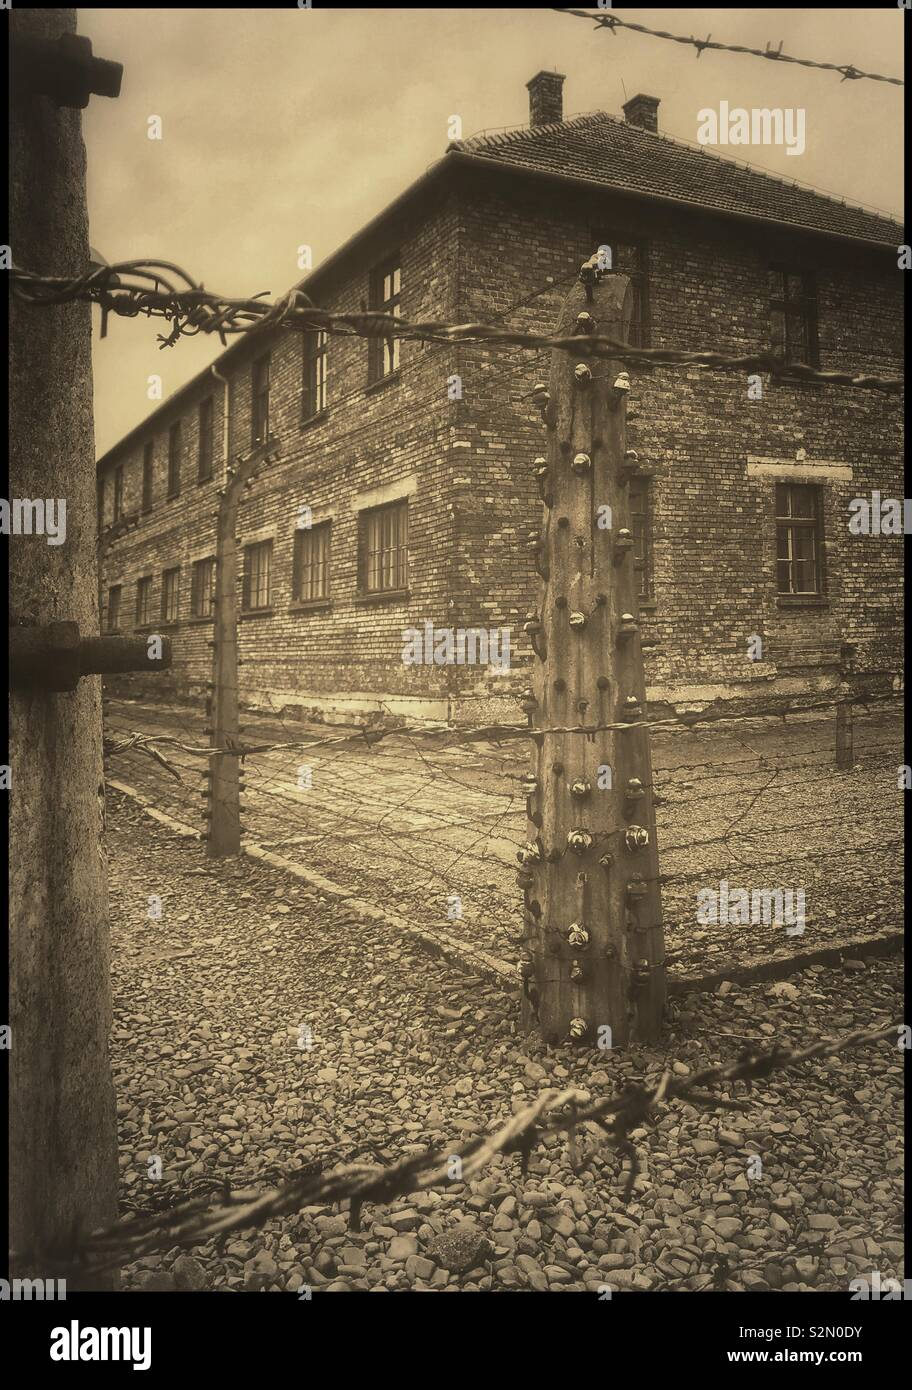 One of the many buildings surrounded by an electric fence at the infamous Nazi Auschwitz Concentration Camp near Kraków in Poland. A site of mass genocide during the 1940's. Now a UNESCO W.H.S. - Stock Image